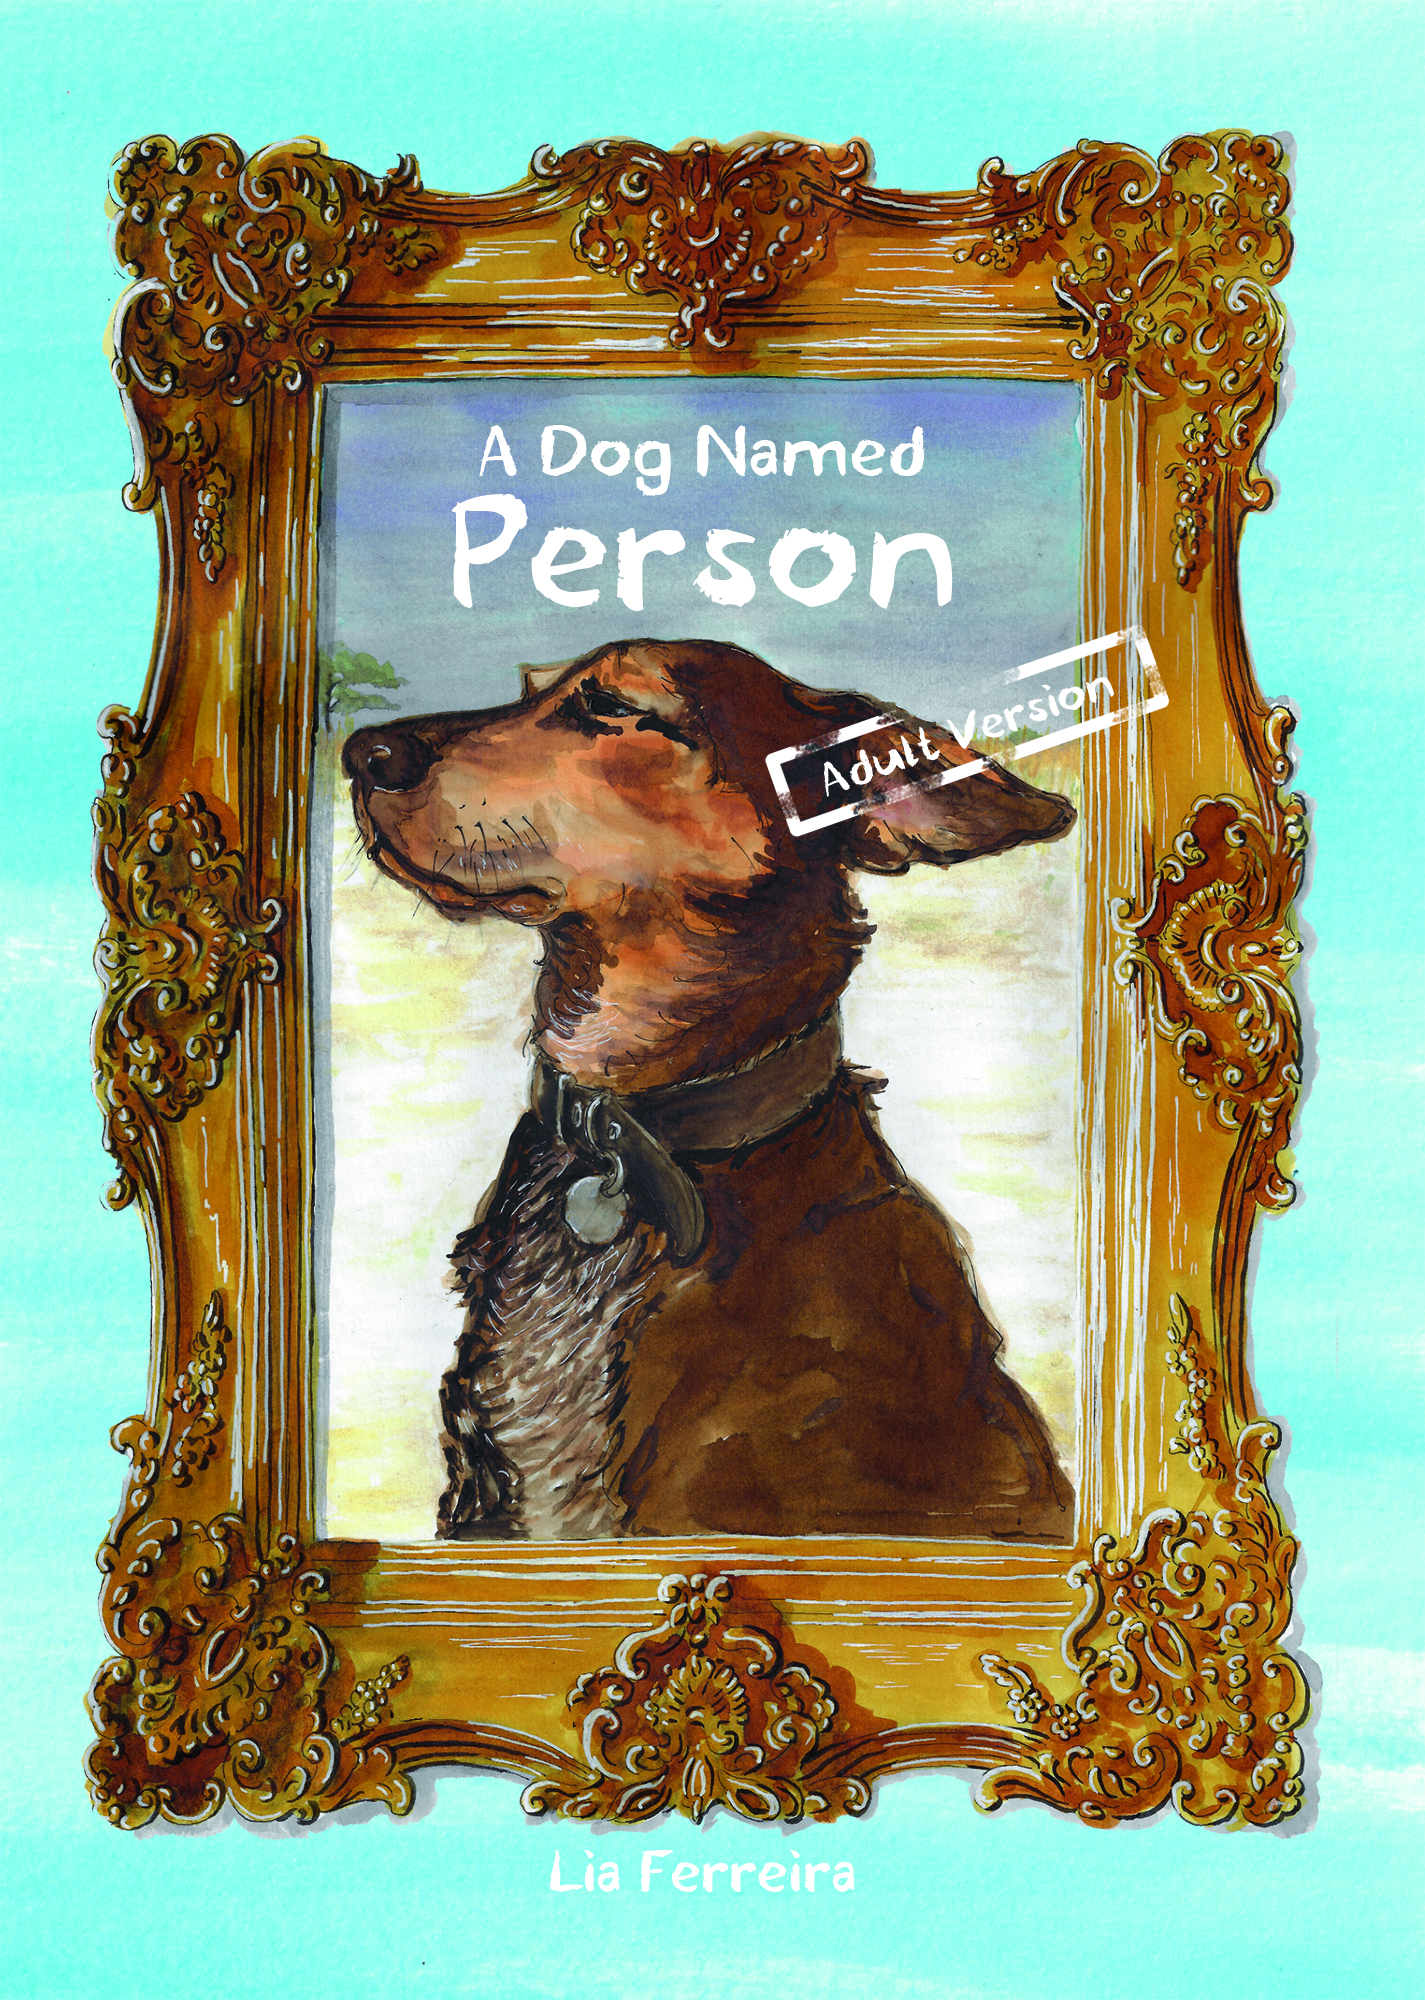 A Dog Named Person